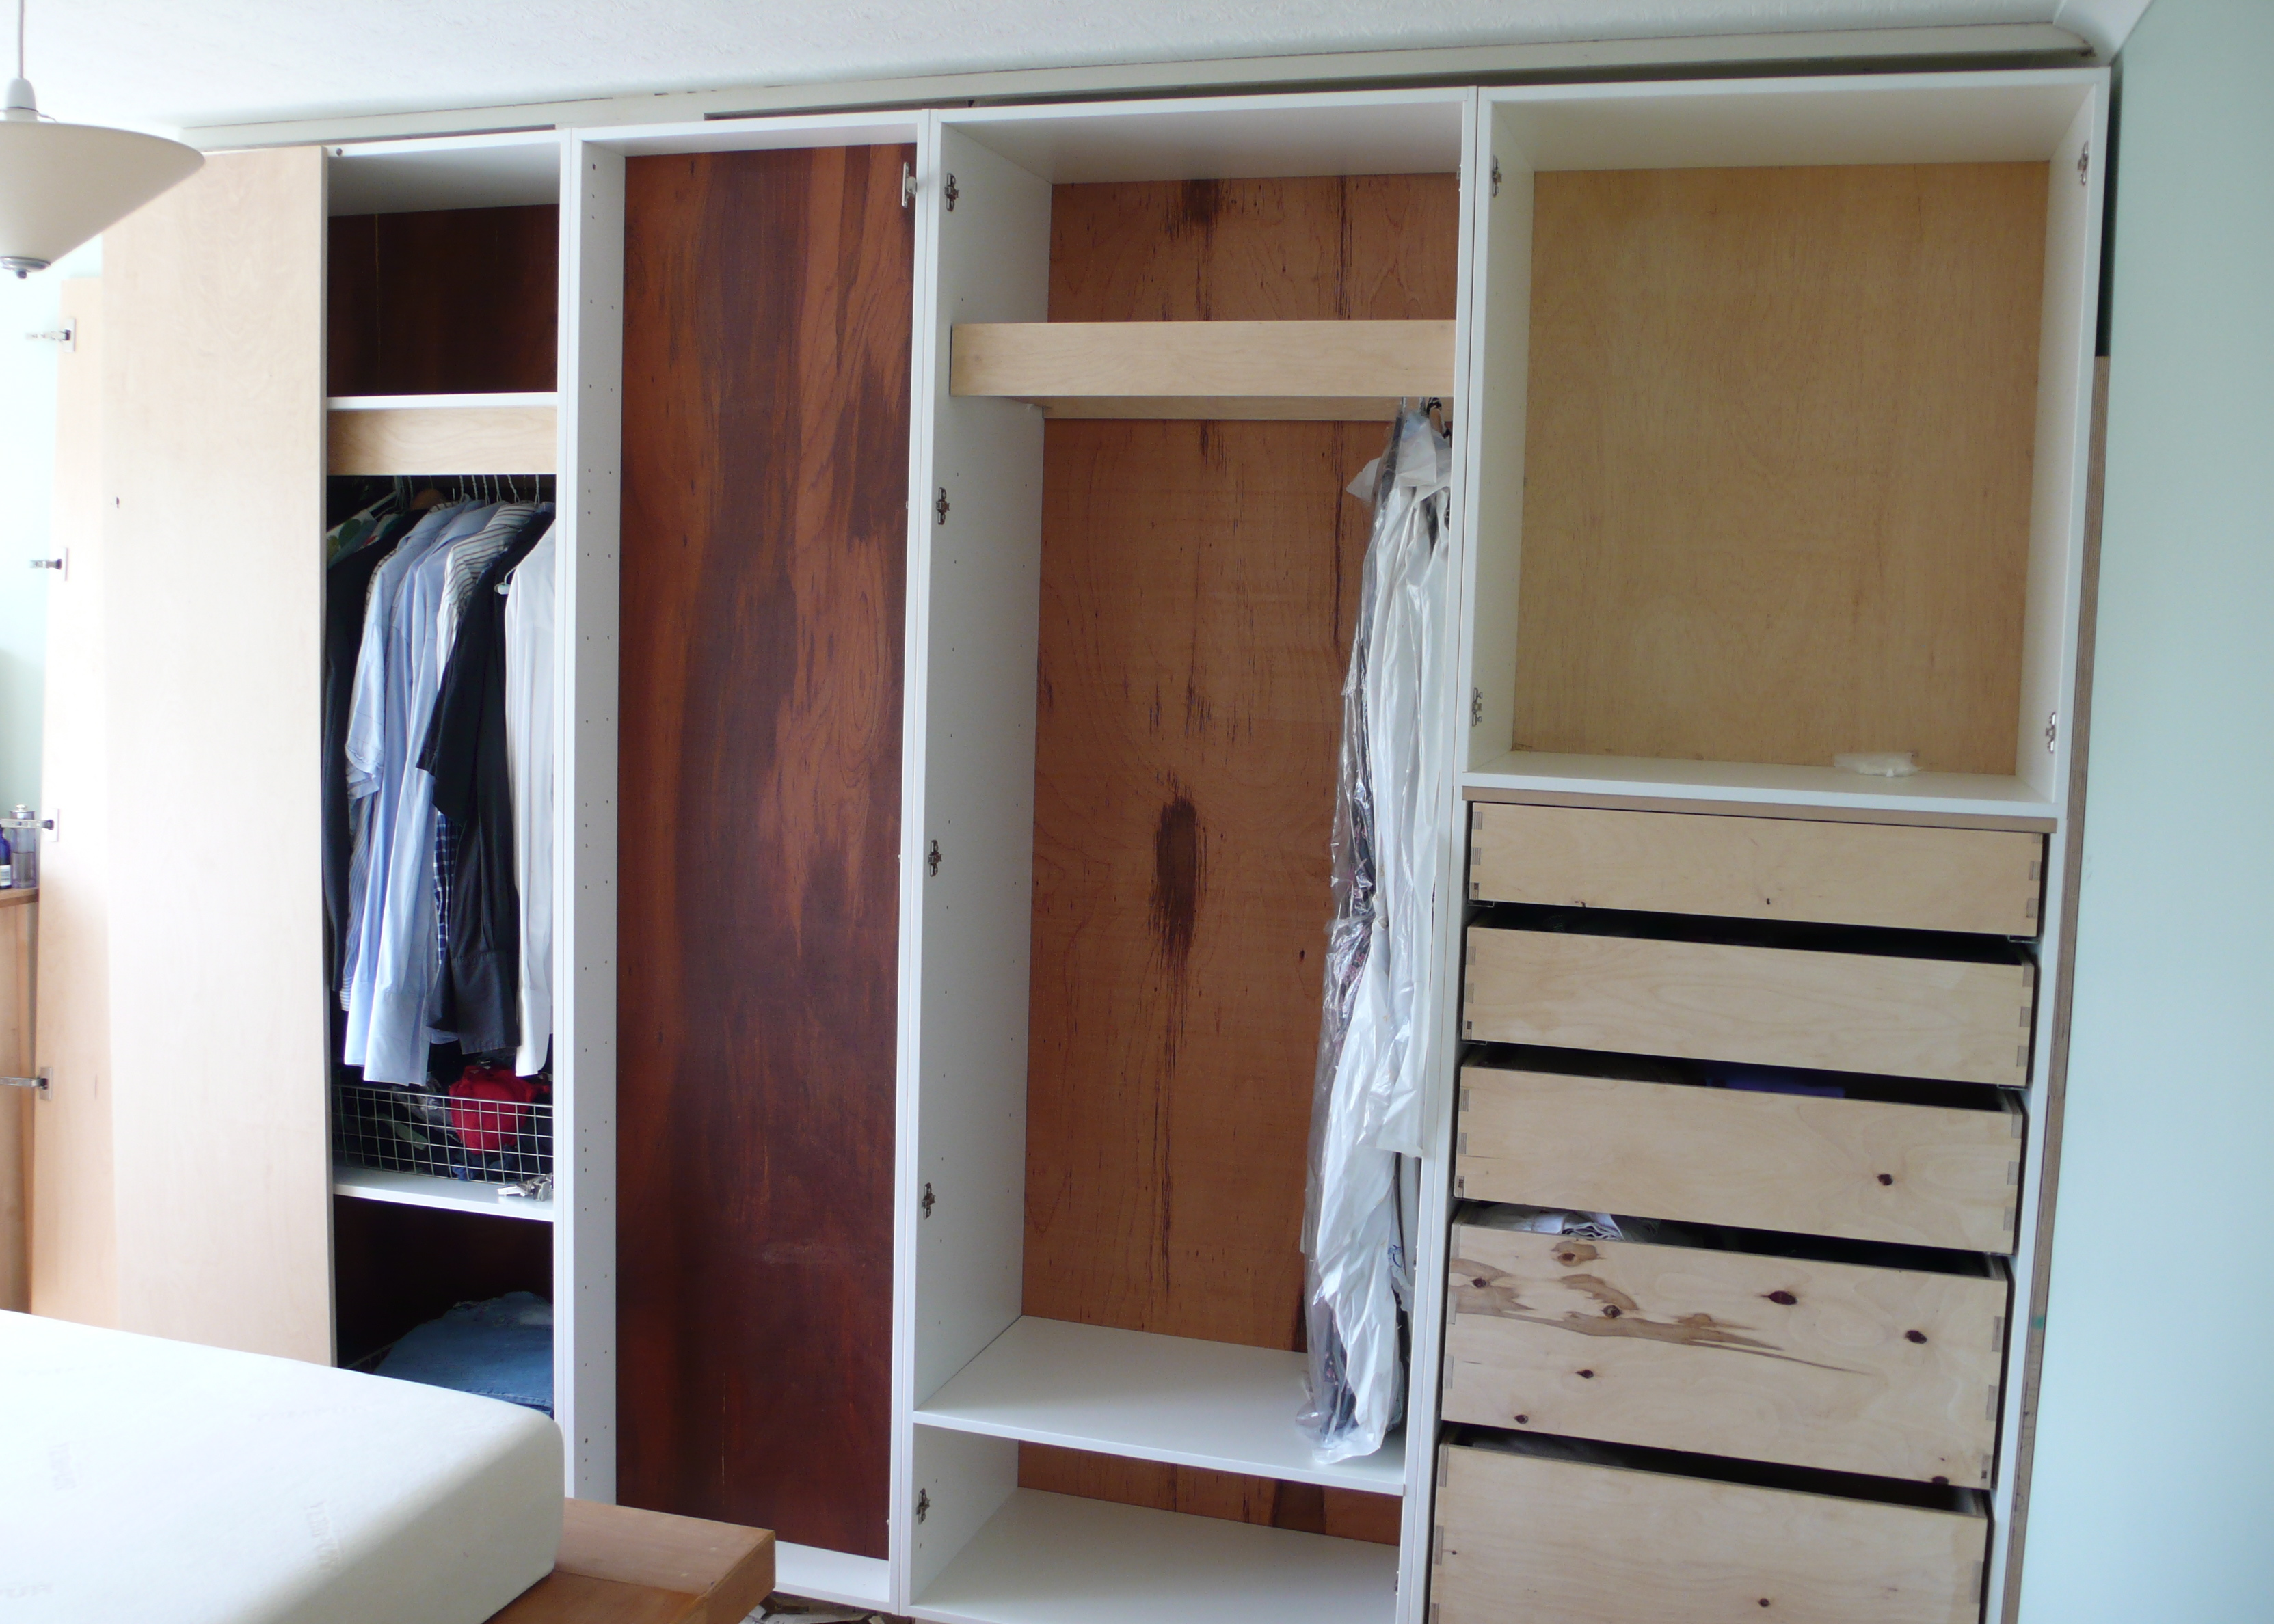 Bedroom wardrobe built around chimney breast | DIY ...